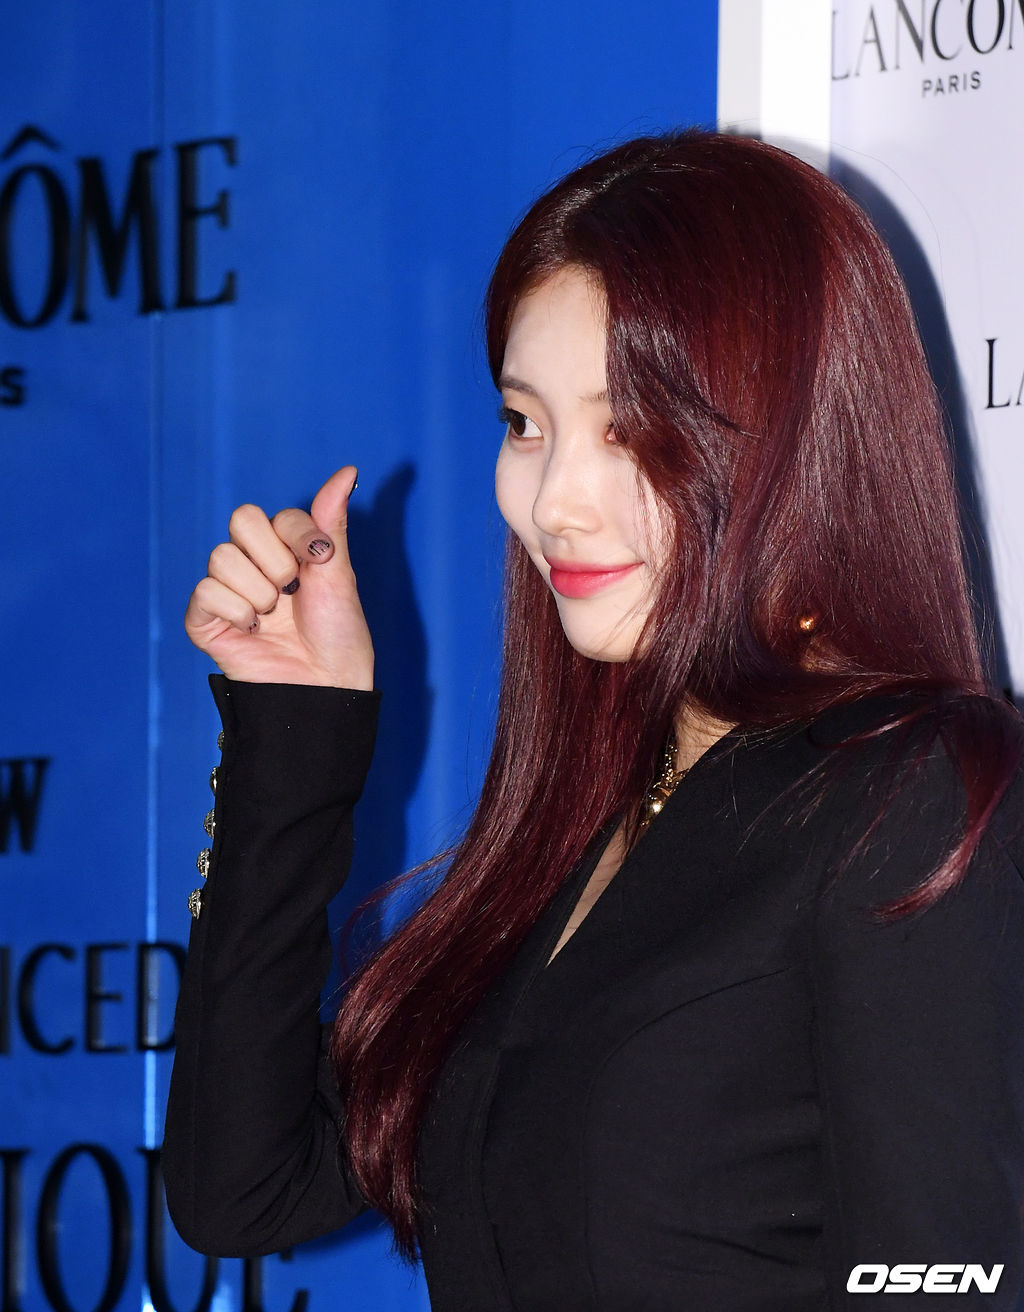 suzy red hair 2